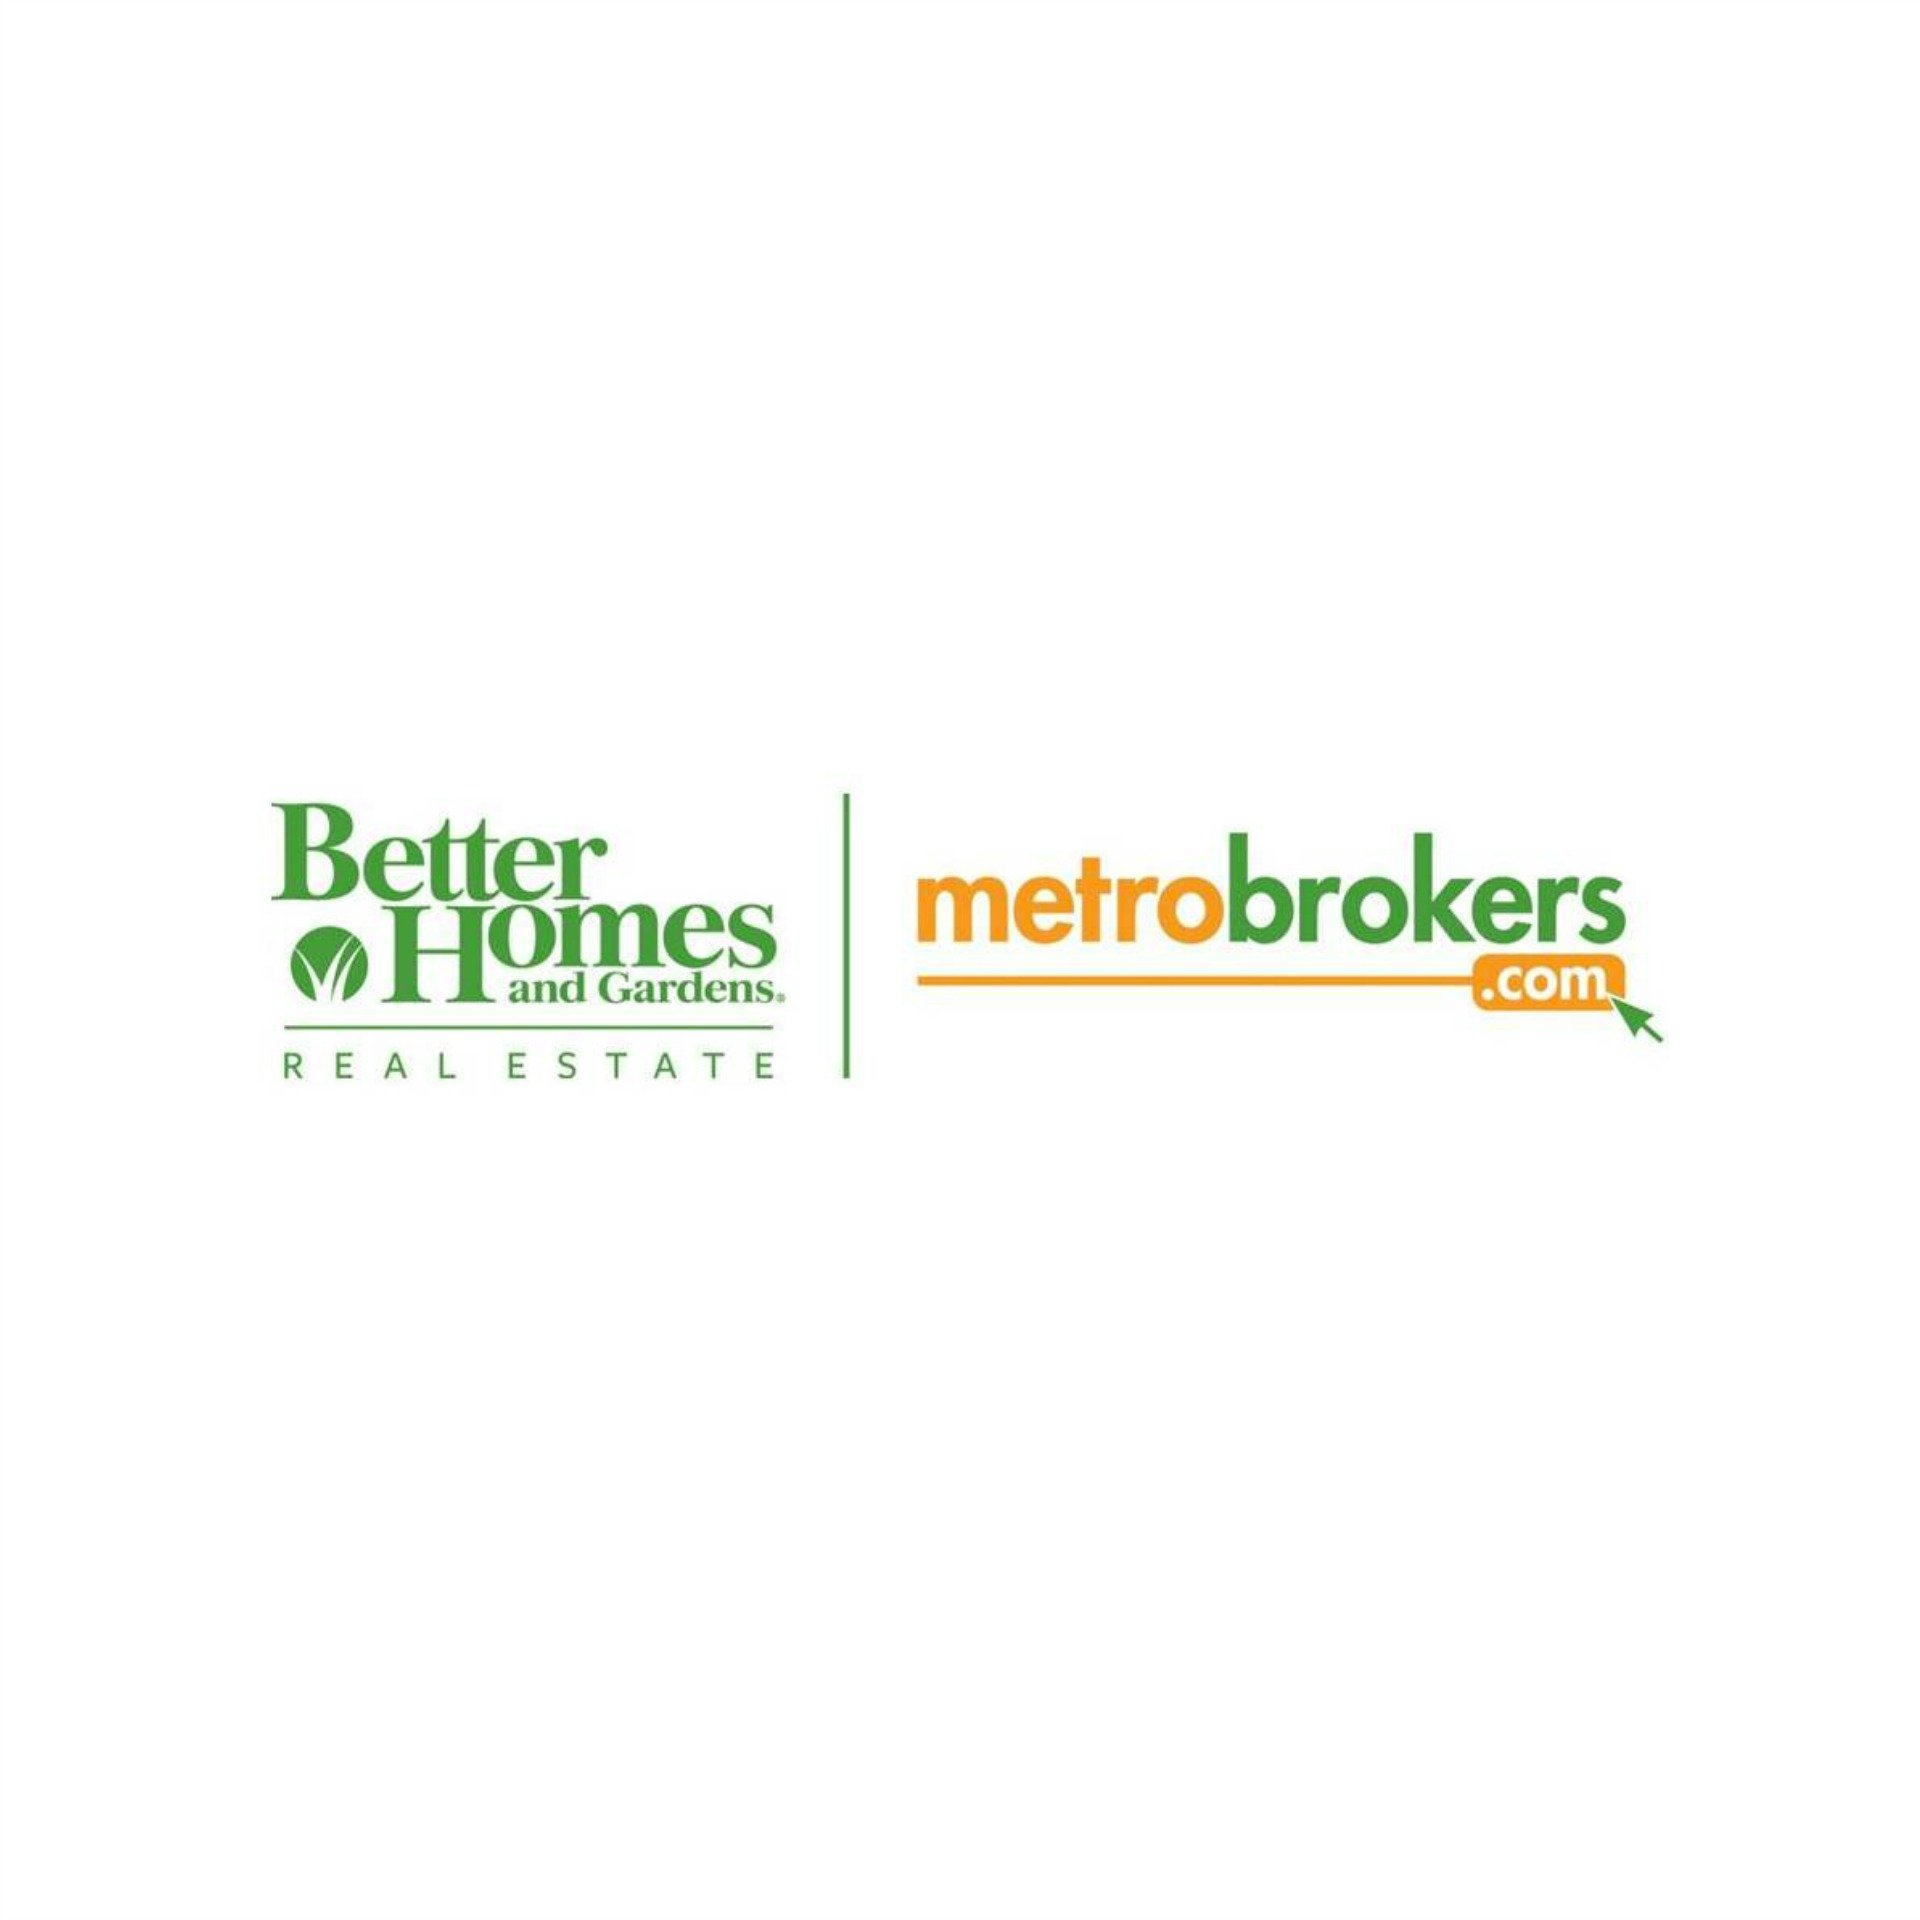 Better Homes and Gardens, Metro Brokers